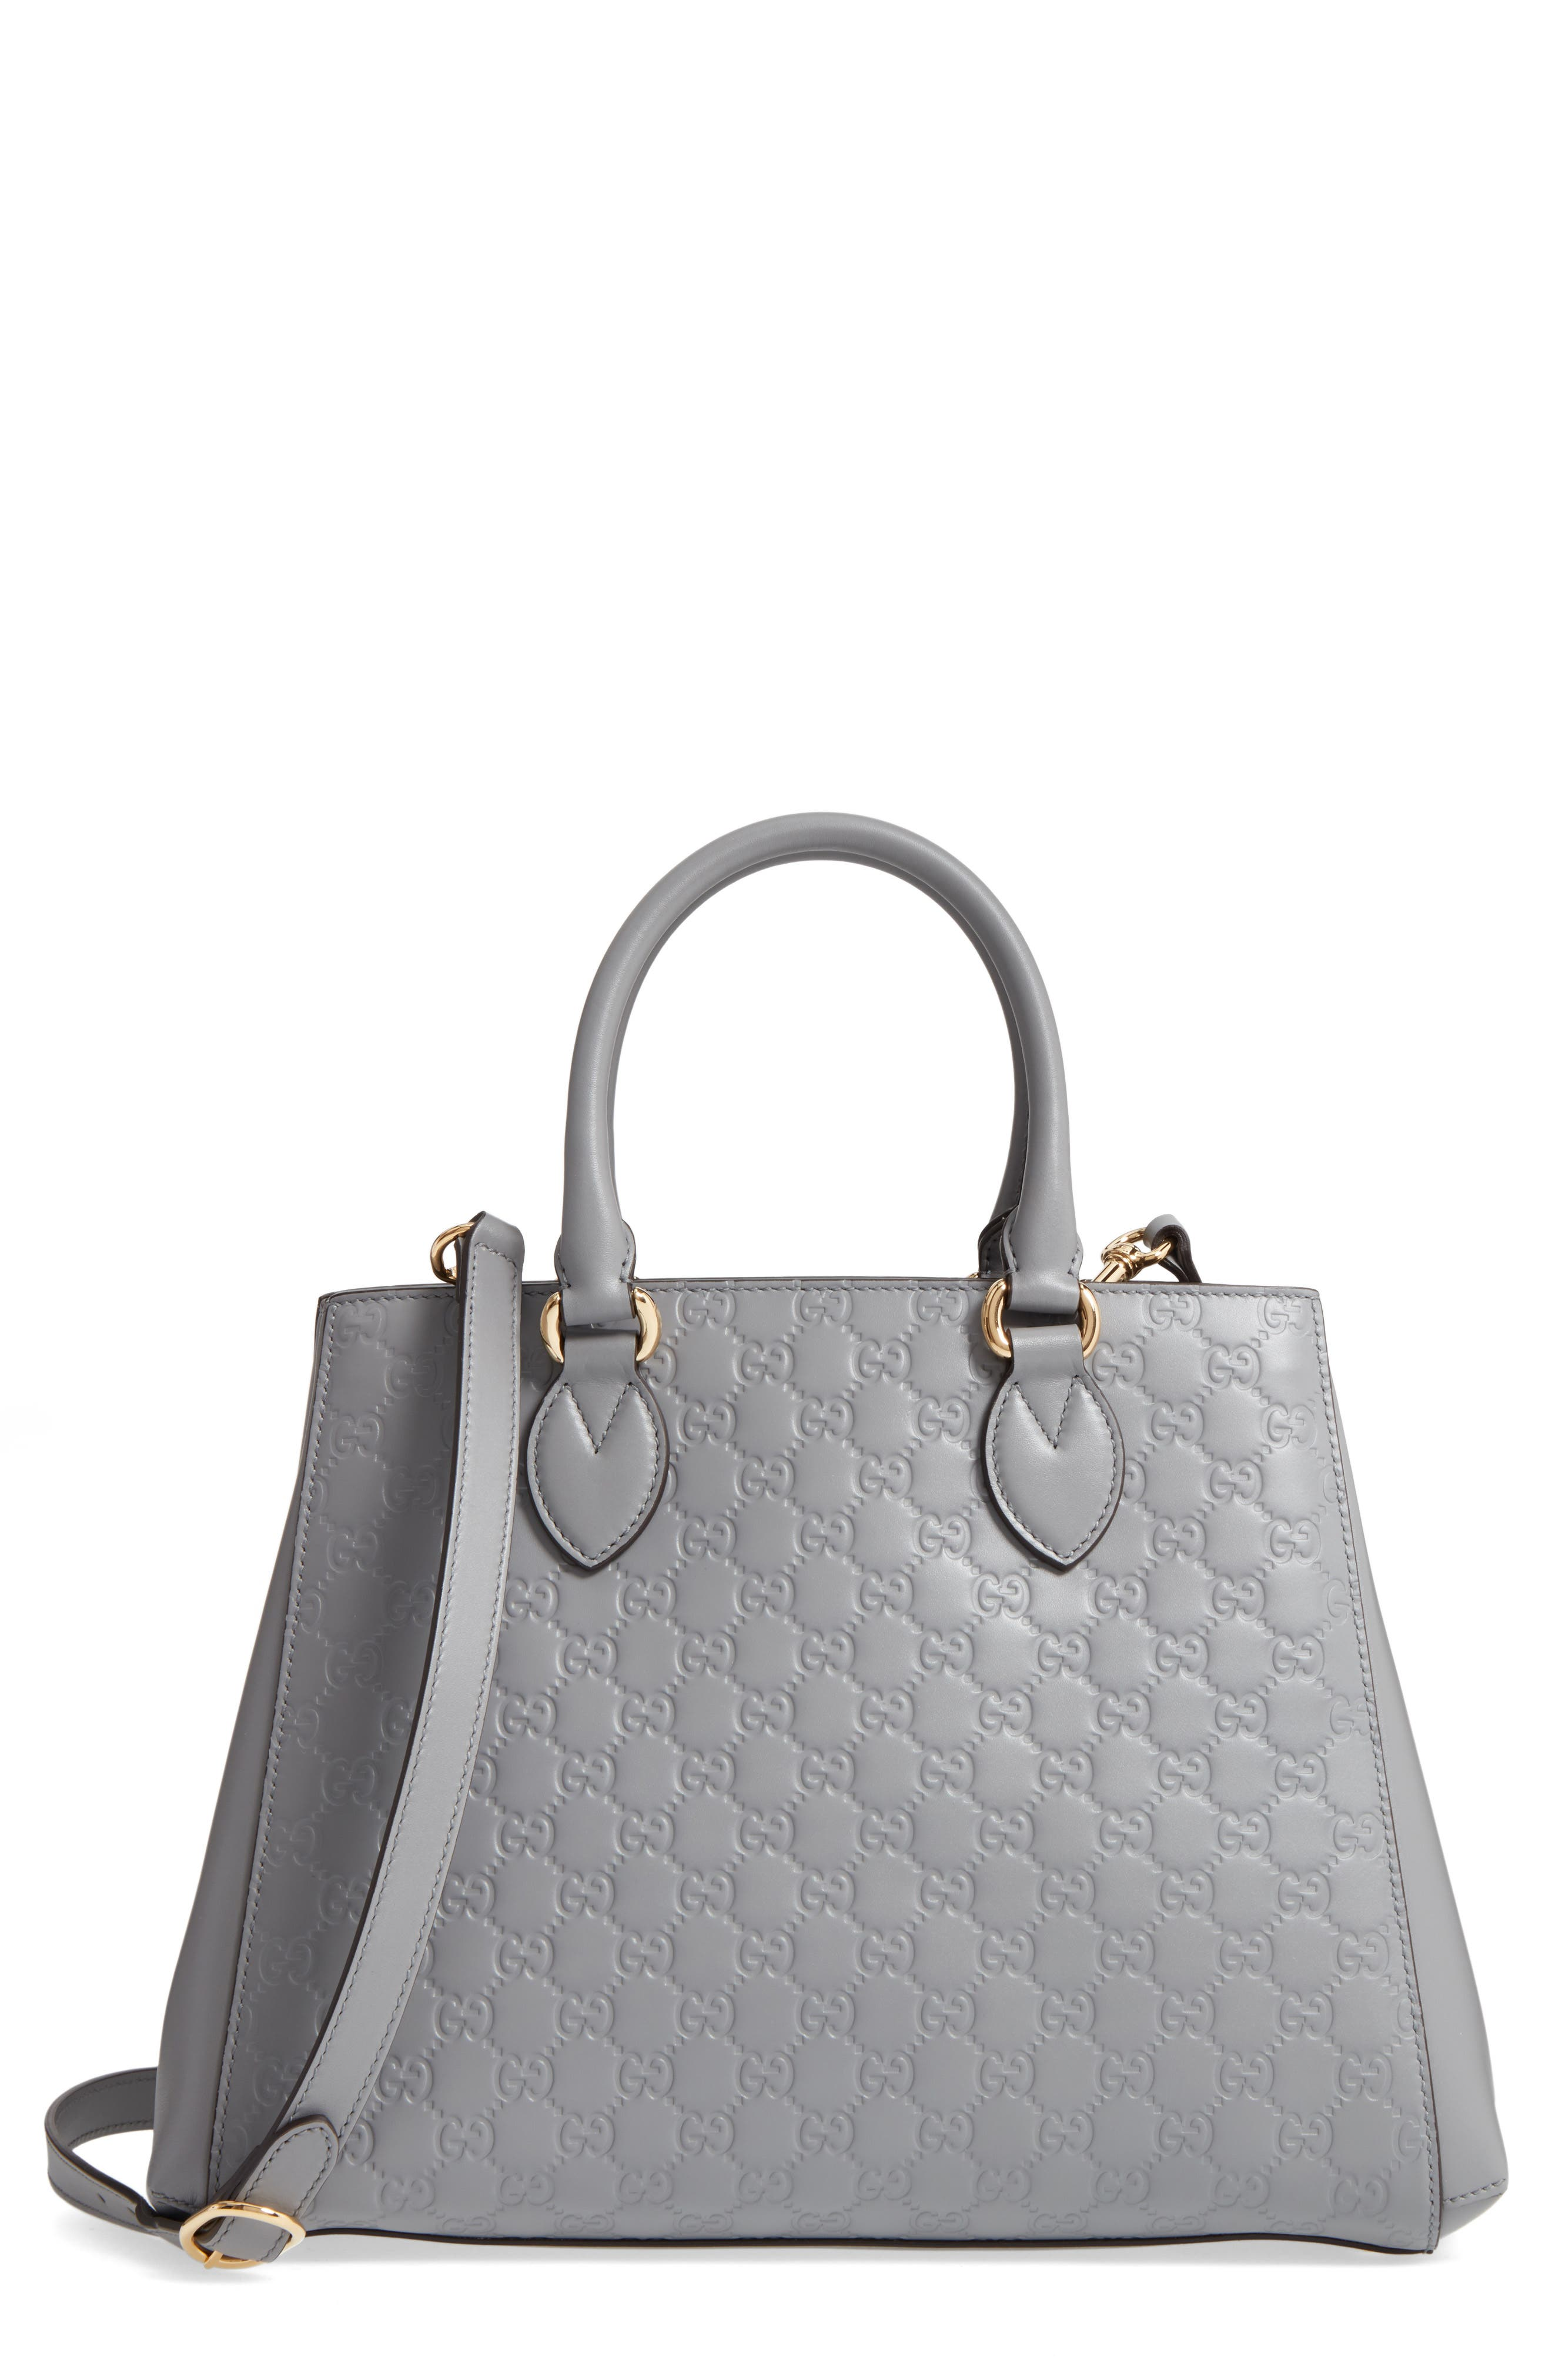 GUCCI Large Top Handle Signature Soft Leather Tote